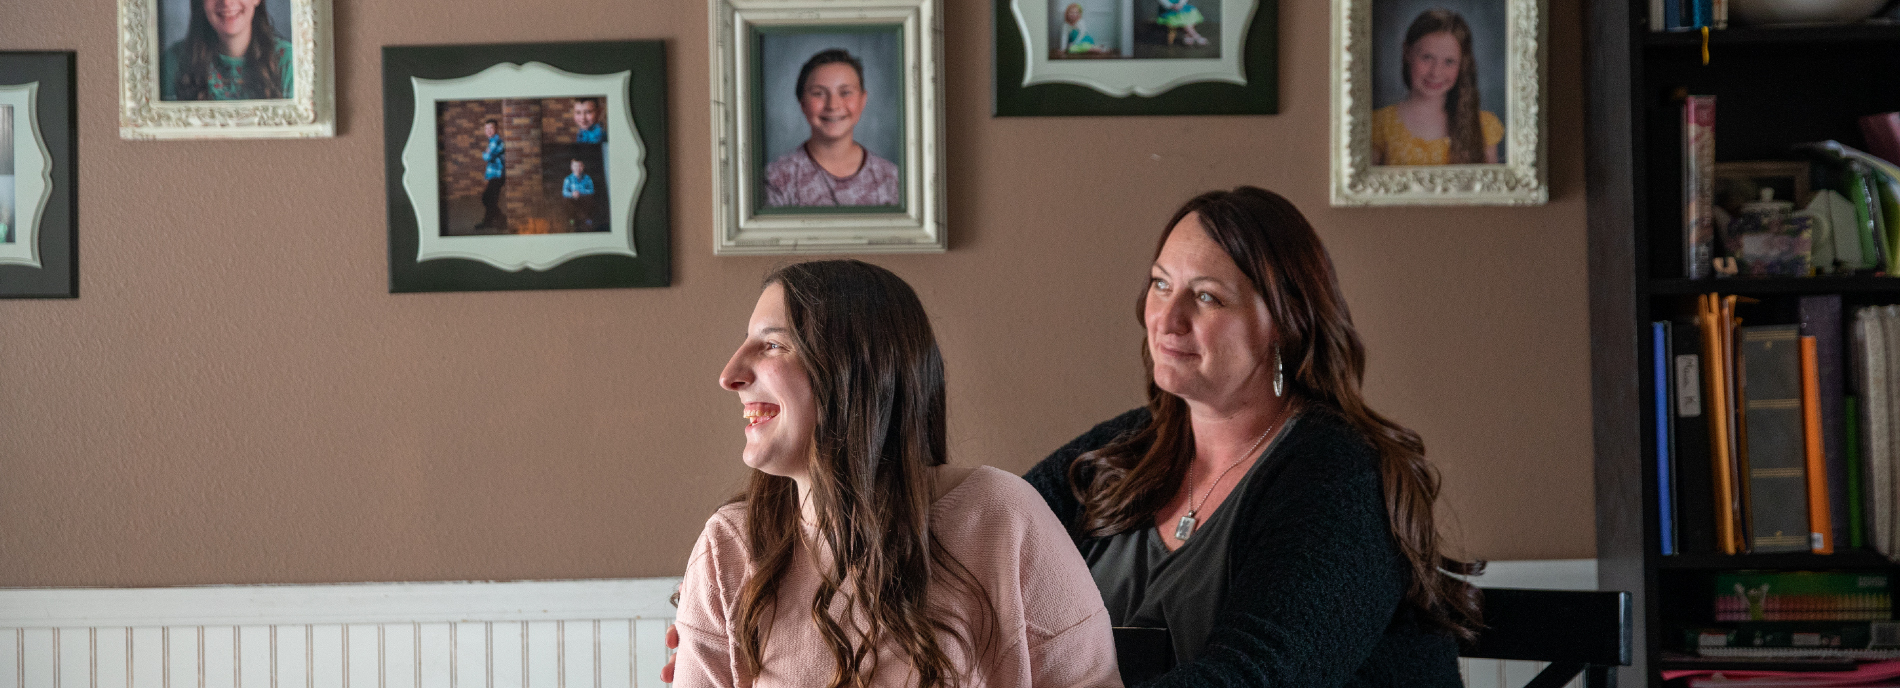 Mother and daughter look to their right. Photos are in the background, along with a wall clock.